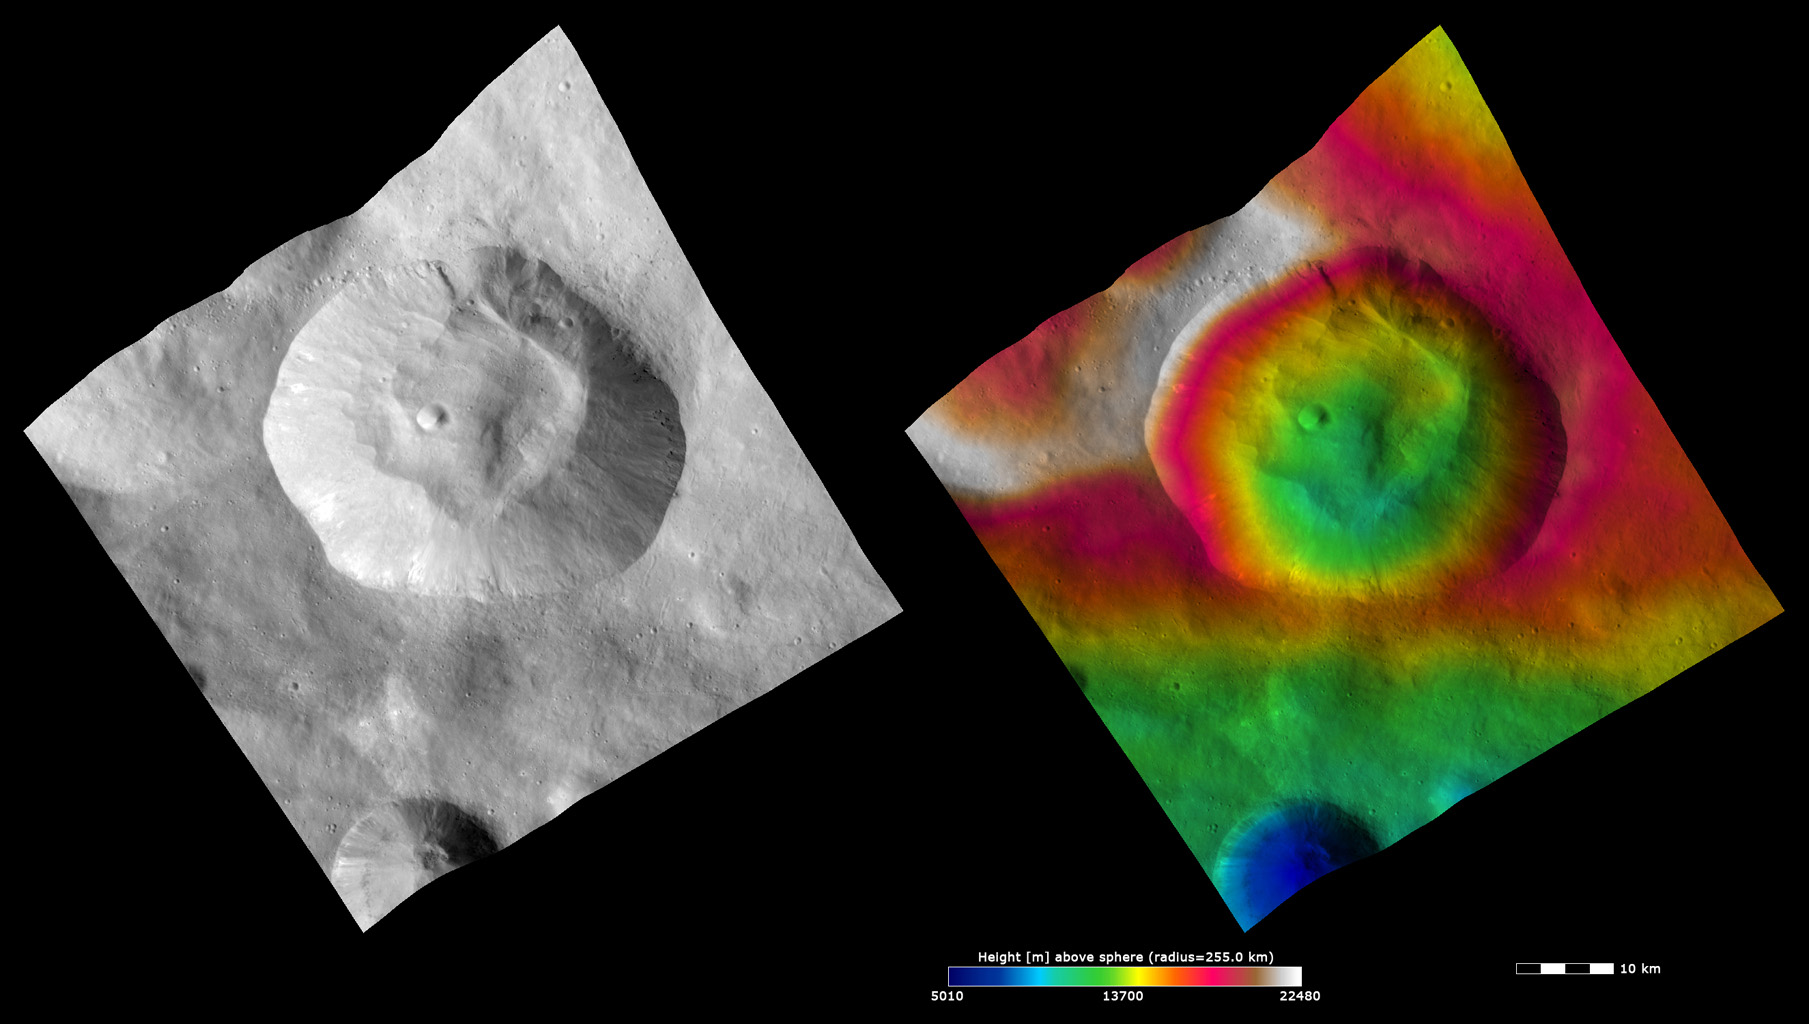 Topography and Albedo Image of Pinaria Crater